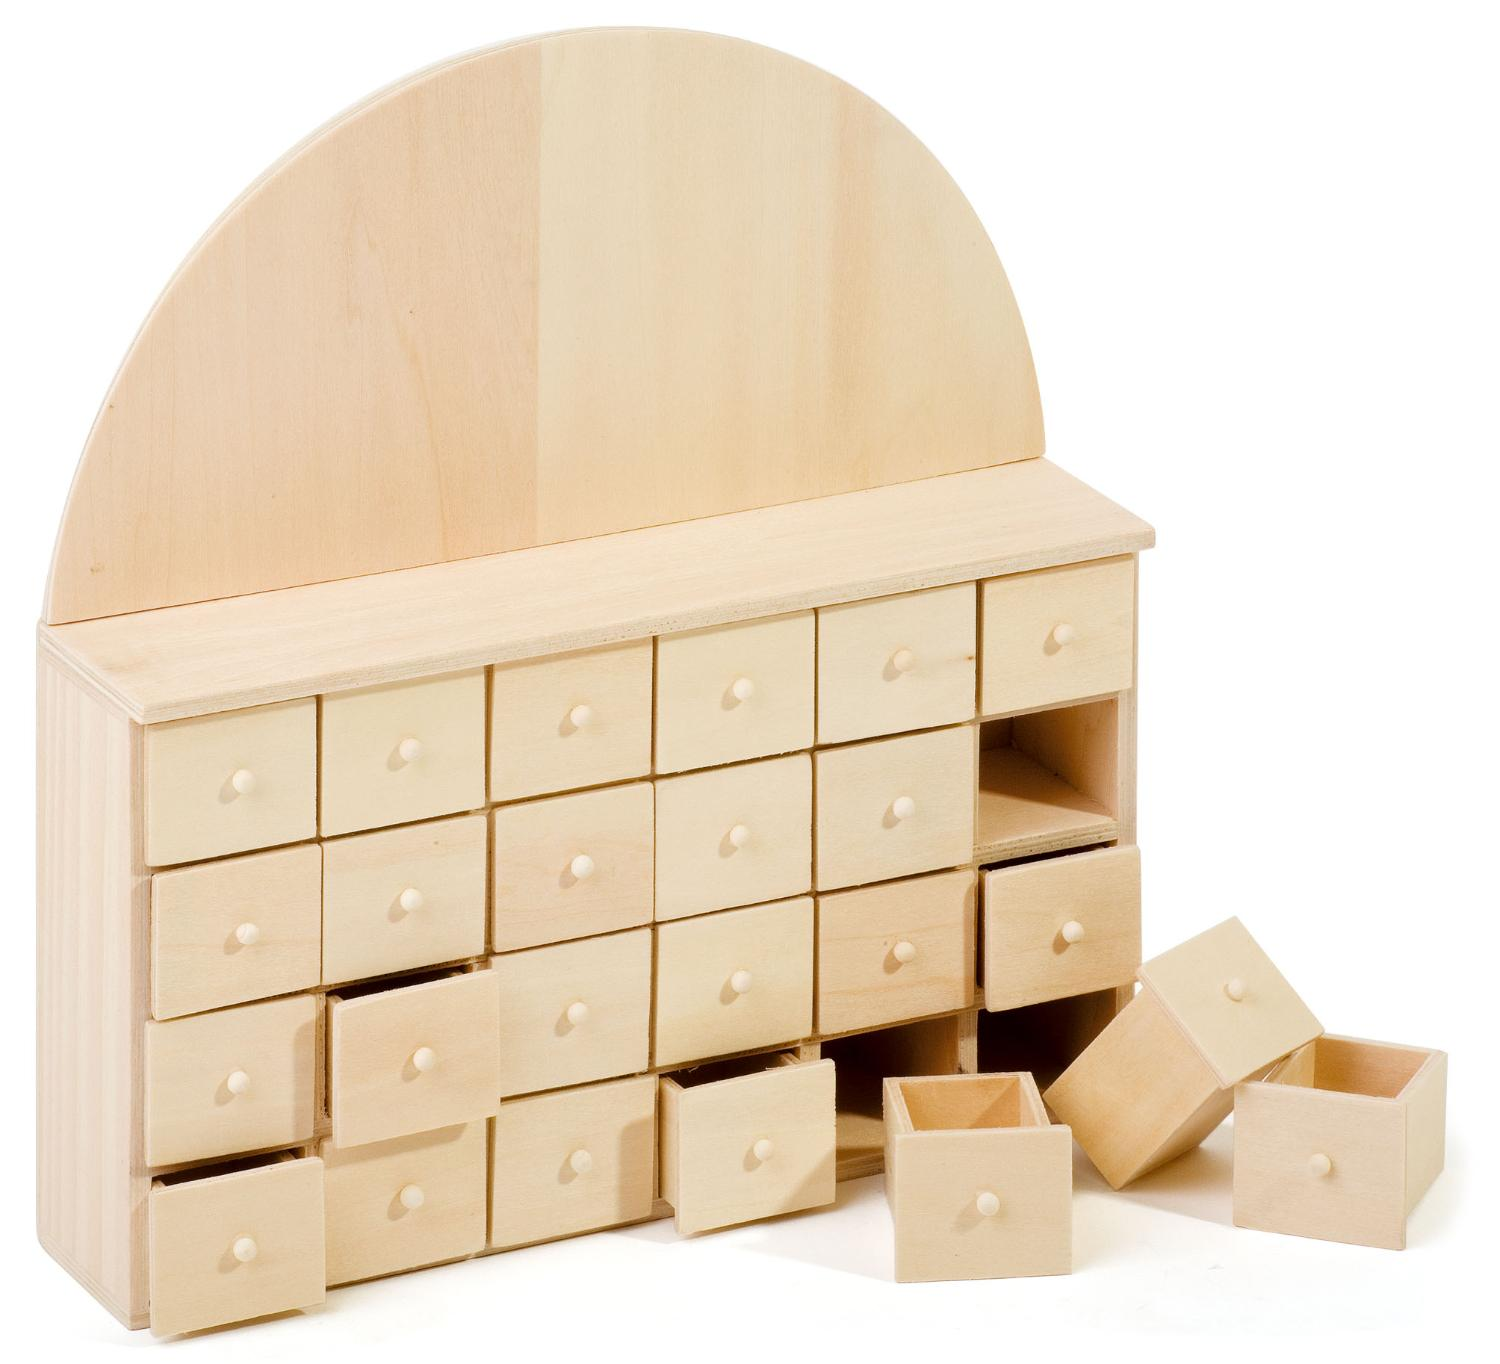 vbs adventskalender mit 24 sch ben aus holz vbs hobby bastelshop. Black Bedroom Furniture Sets. Home Design Ideas